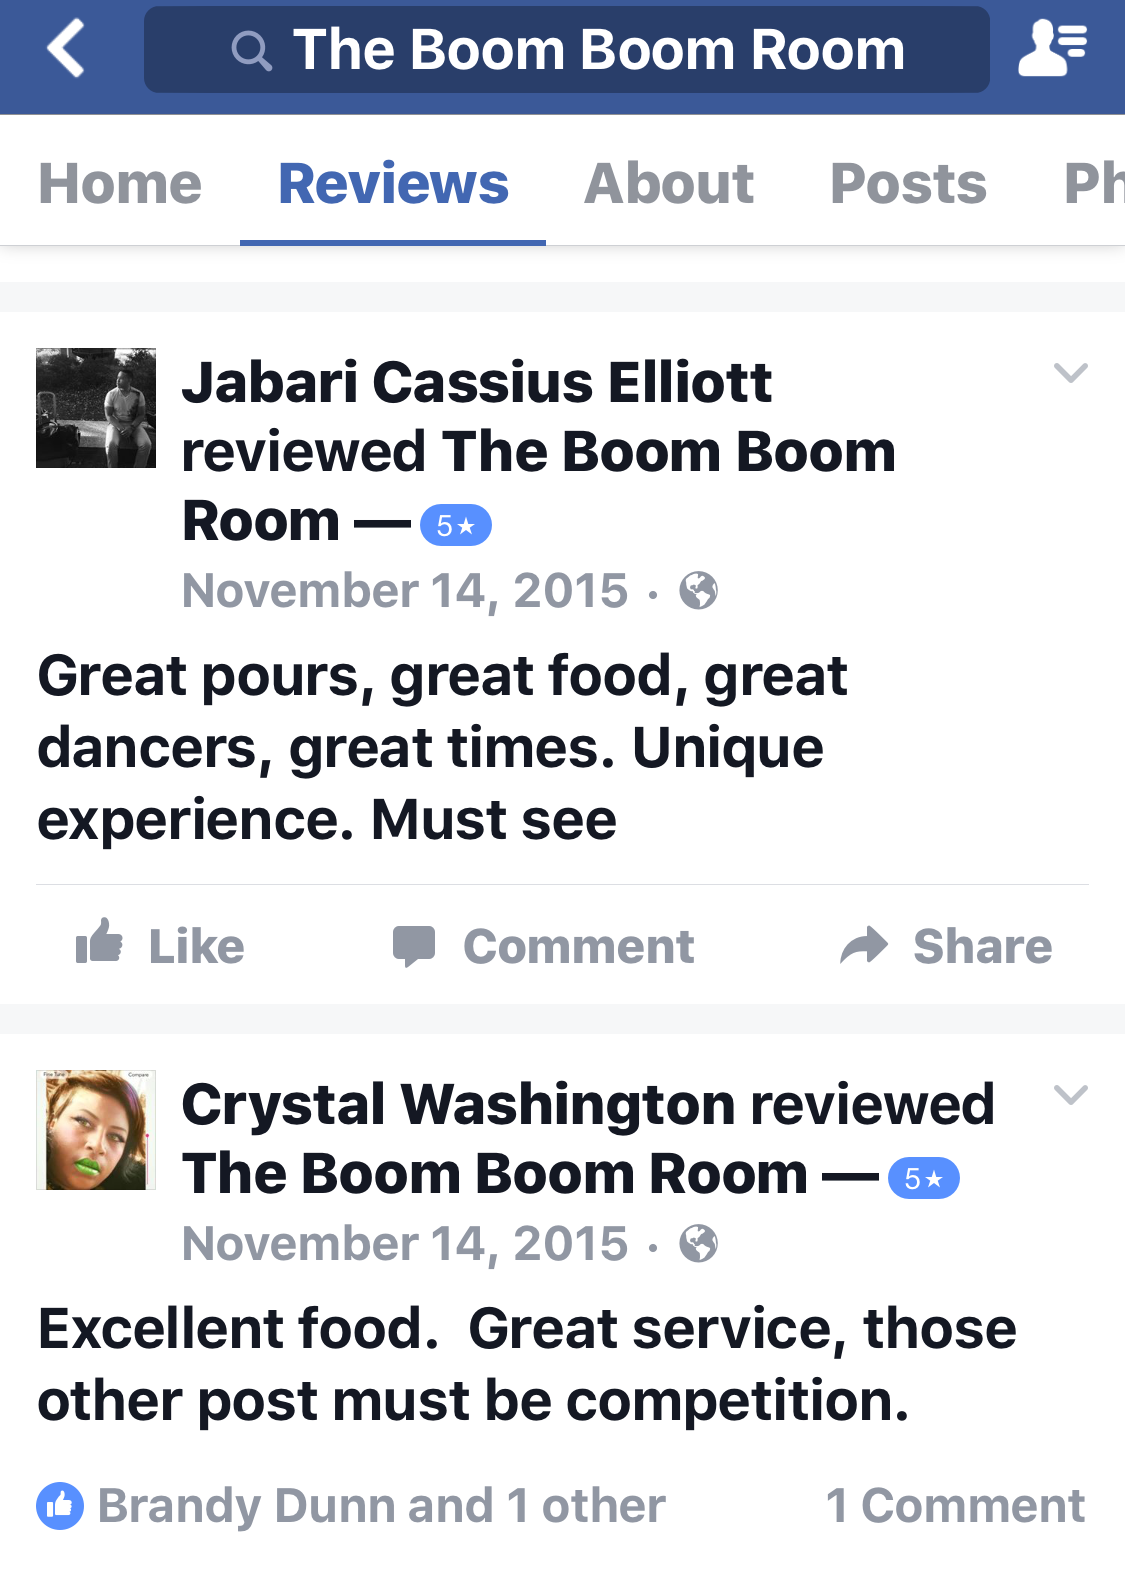 The Boom Boom Room St. Louis Burlesque Positive Reviews -150.png